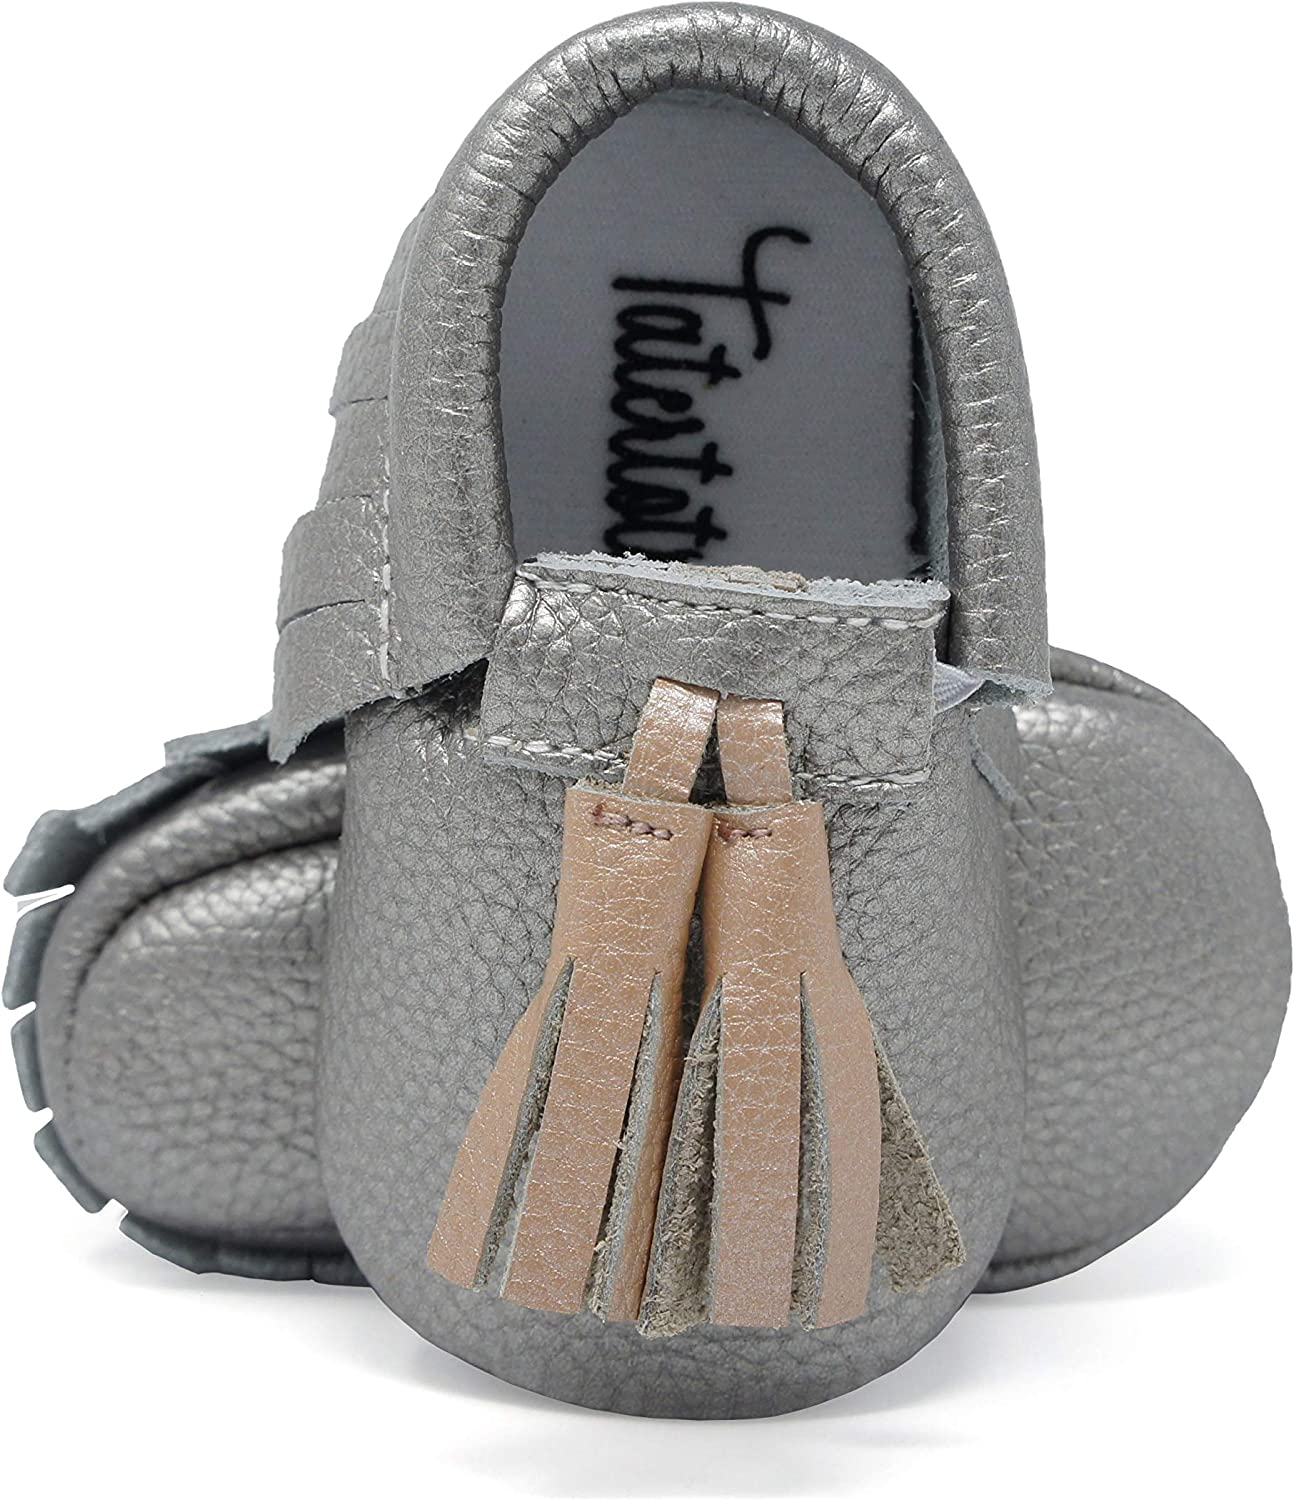 Tatertots Baby and Toddler Moccasin Shoes, Genuine Leather Soft Sole - 3-6 and 6-12 Months